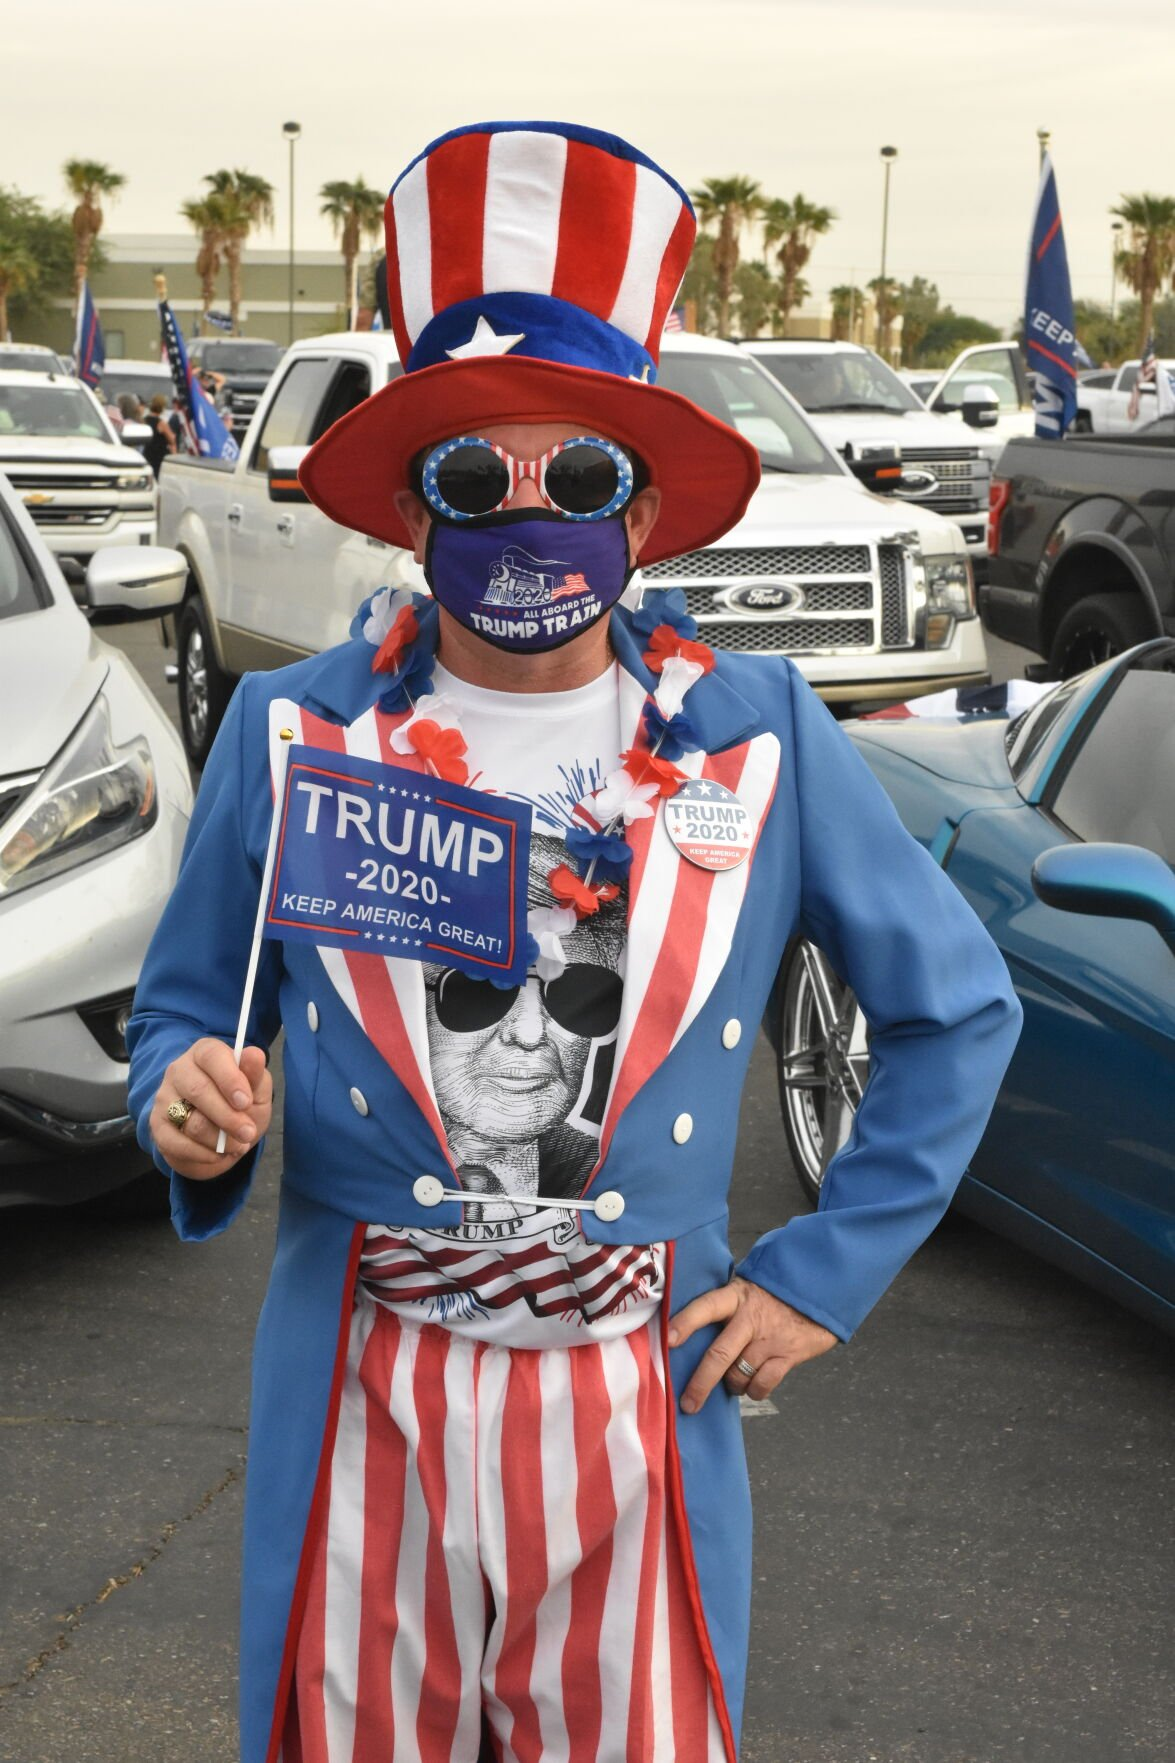 Hundreds turn out for Trump rally